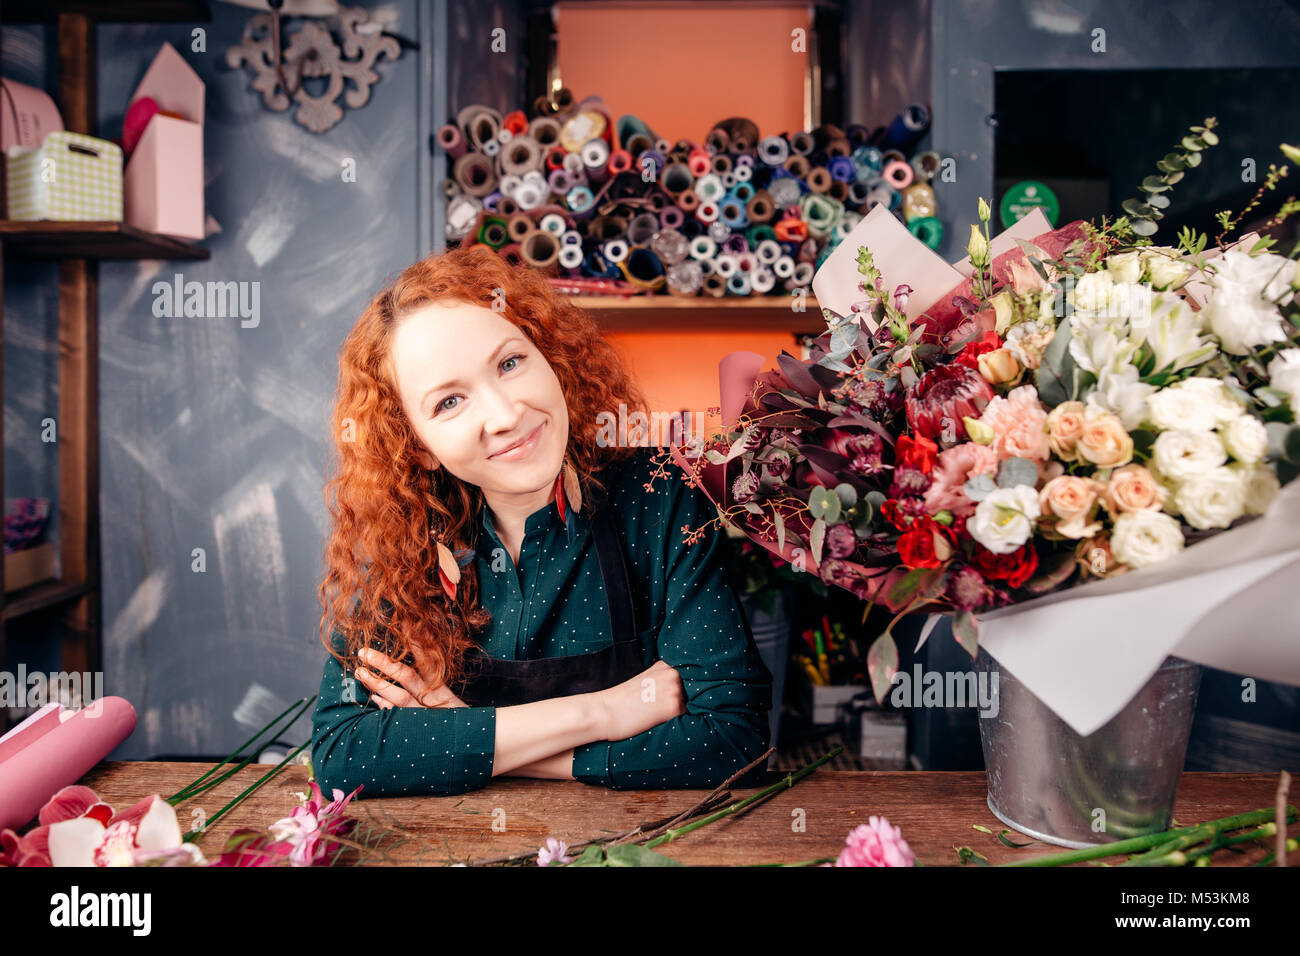 florist-designer with red hair and green eyes working at florist's shop - Stock Image